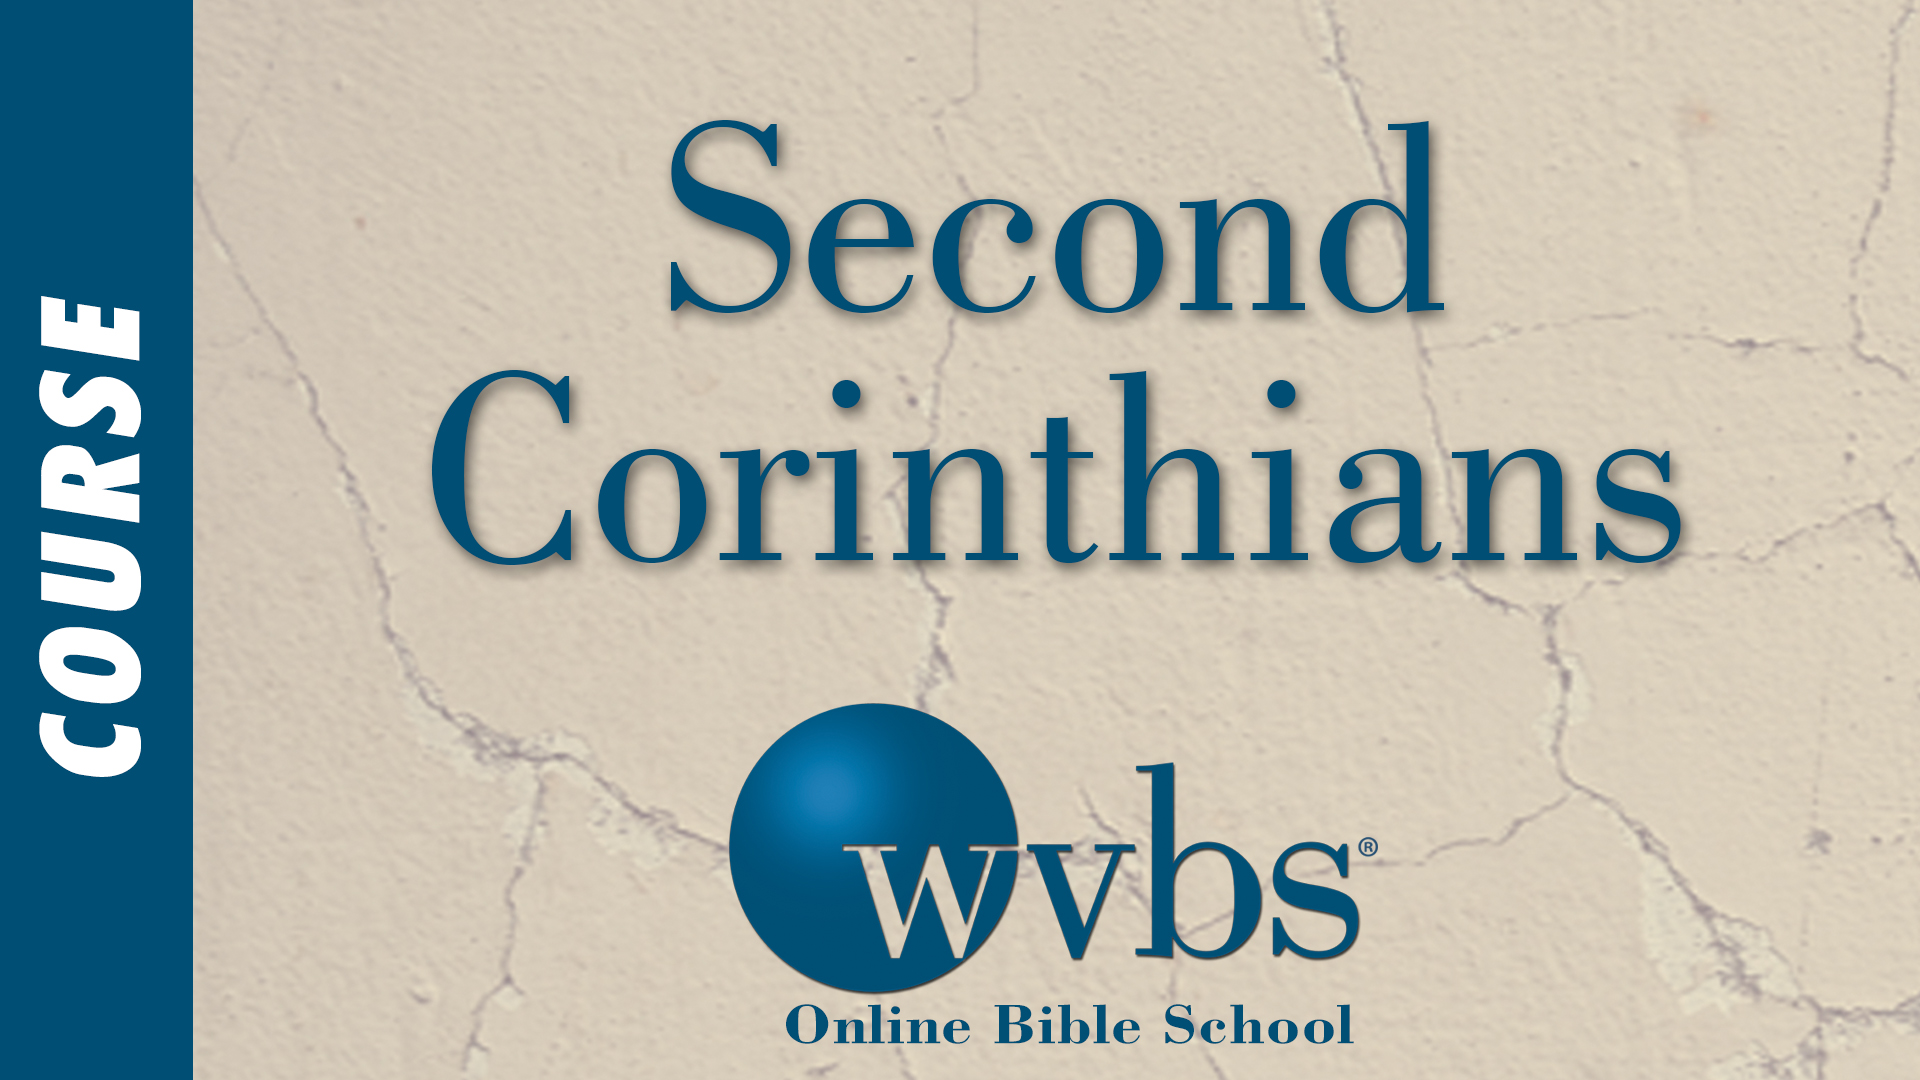 Second Corinthians (Online Bible School)